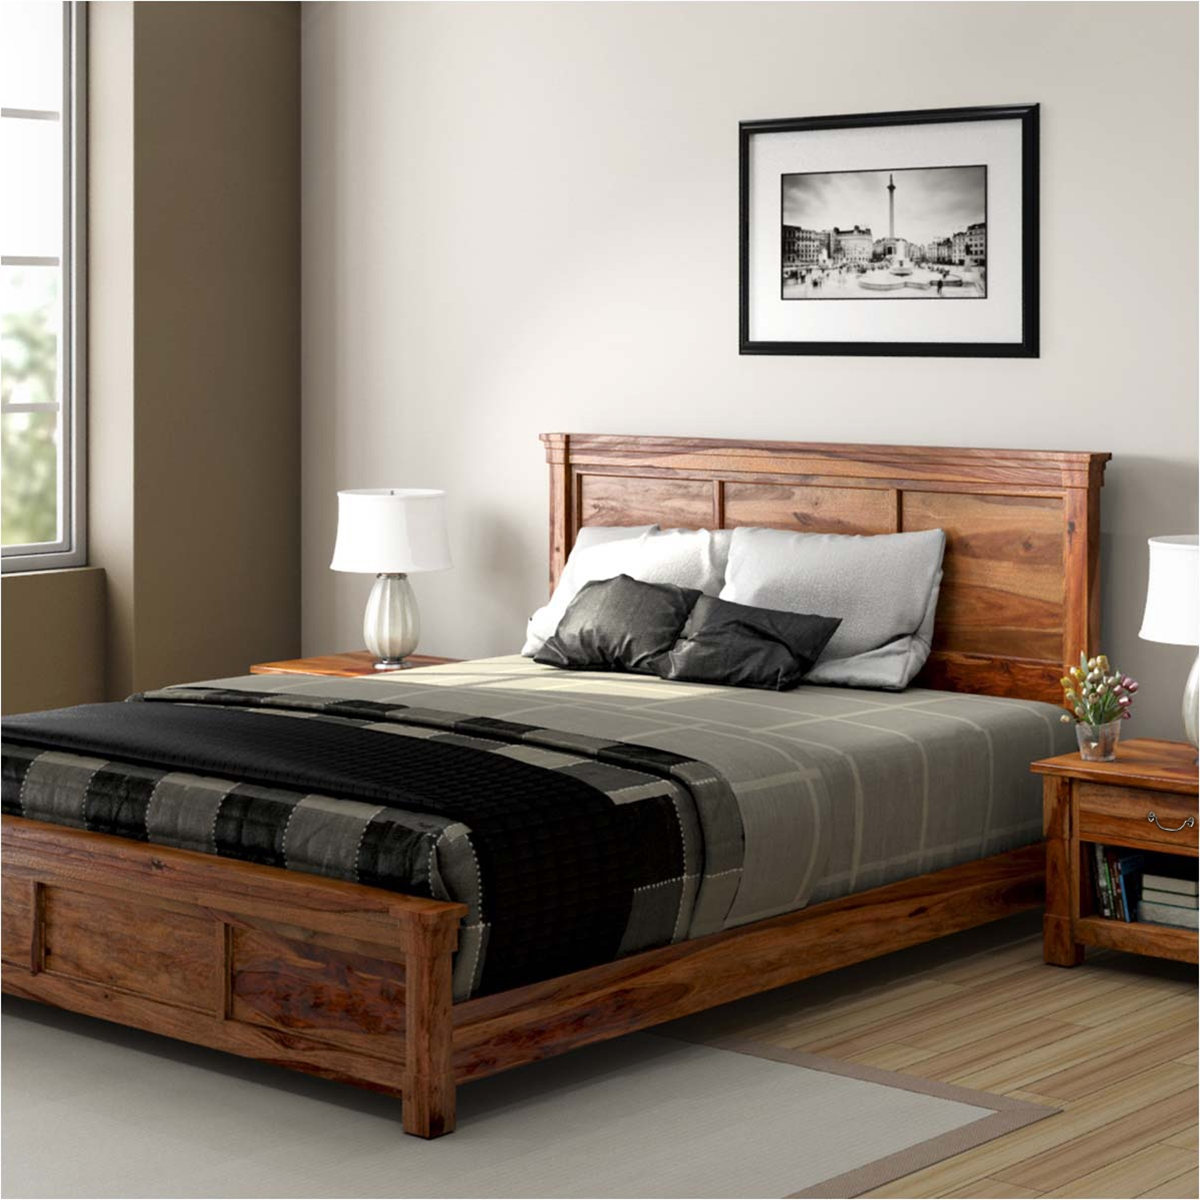 Solid wood beds modern farmhouse rustic solid wood platform bed SSRSWRD